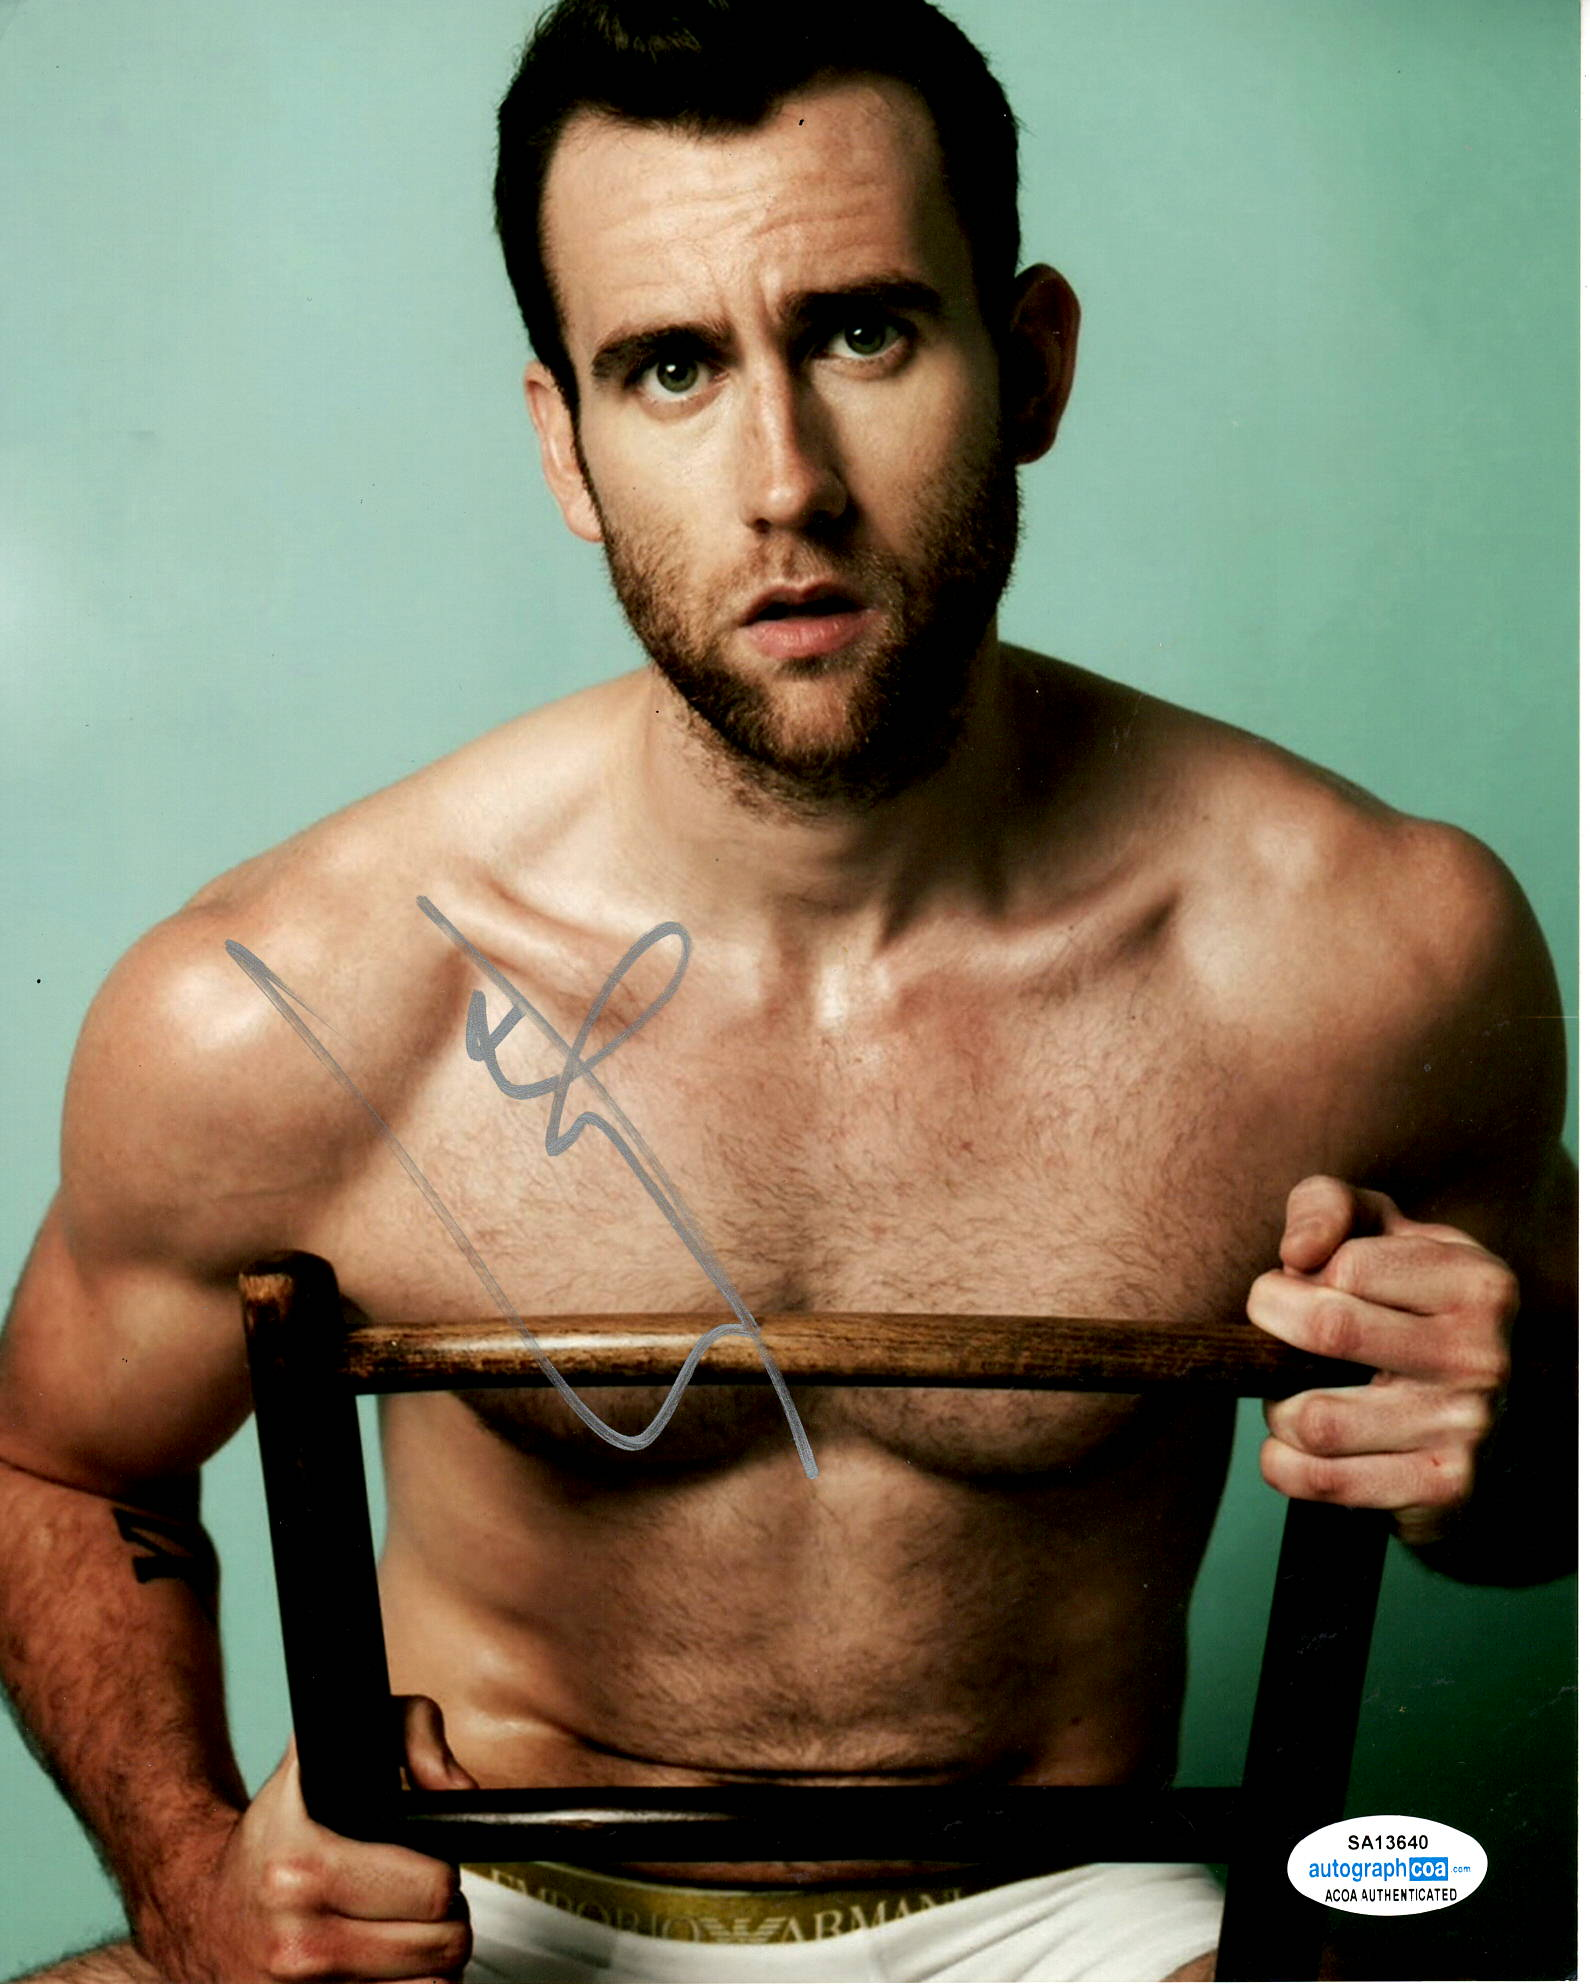 Matthew Matt Lewis Harry Potter Signed Autograph 8x10 Photo #9 - Outlaw Hobbies Authentic Autographs